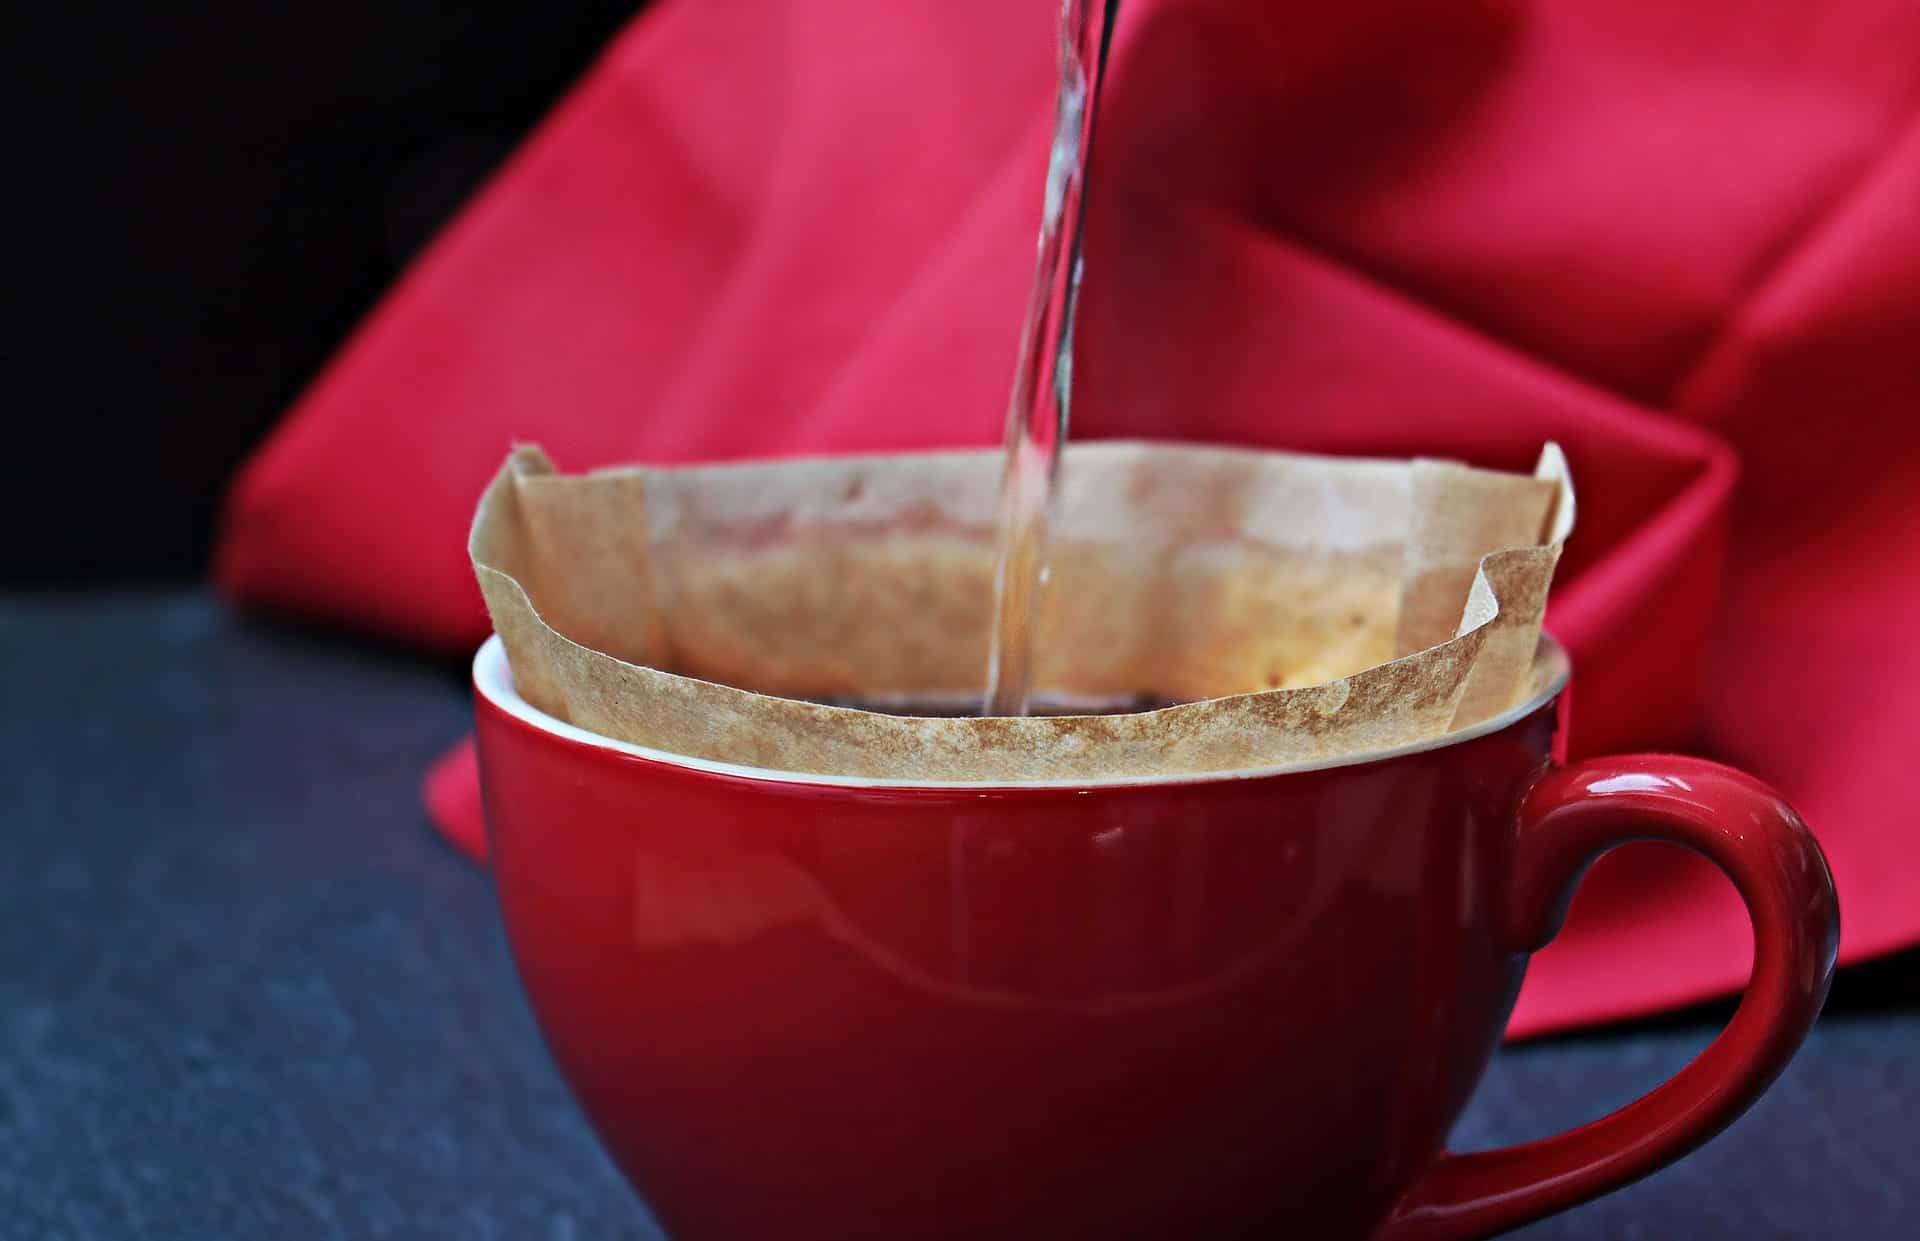 Coffee Filter: Some Interesting Facts About It